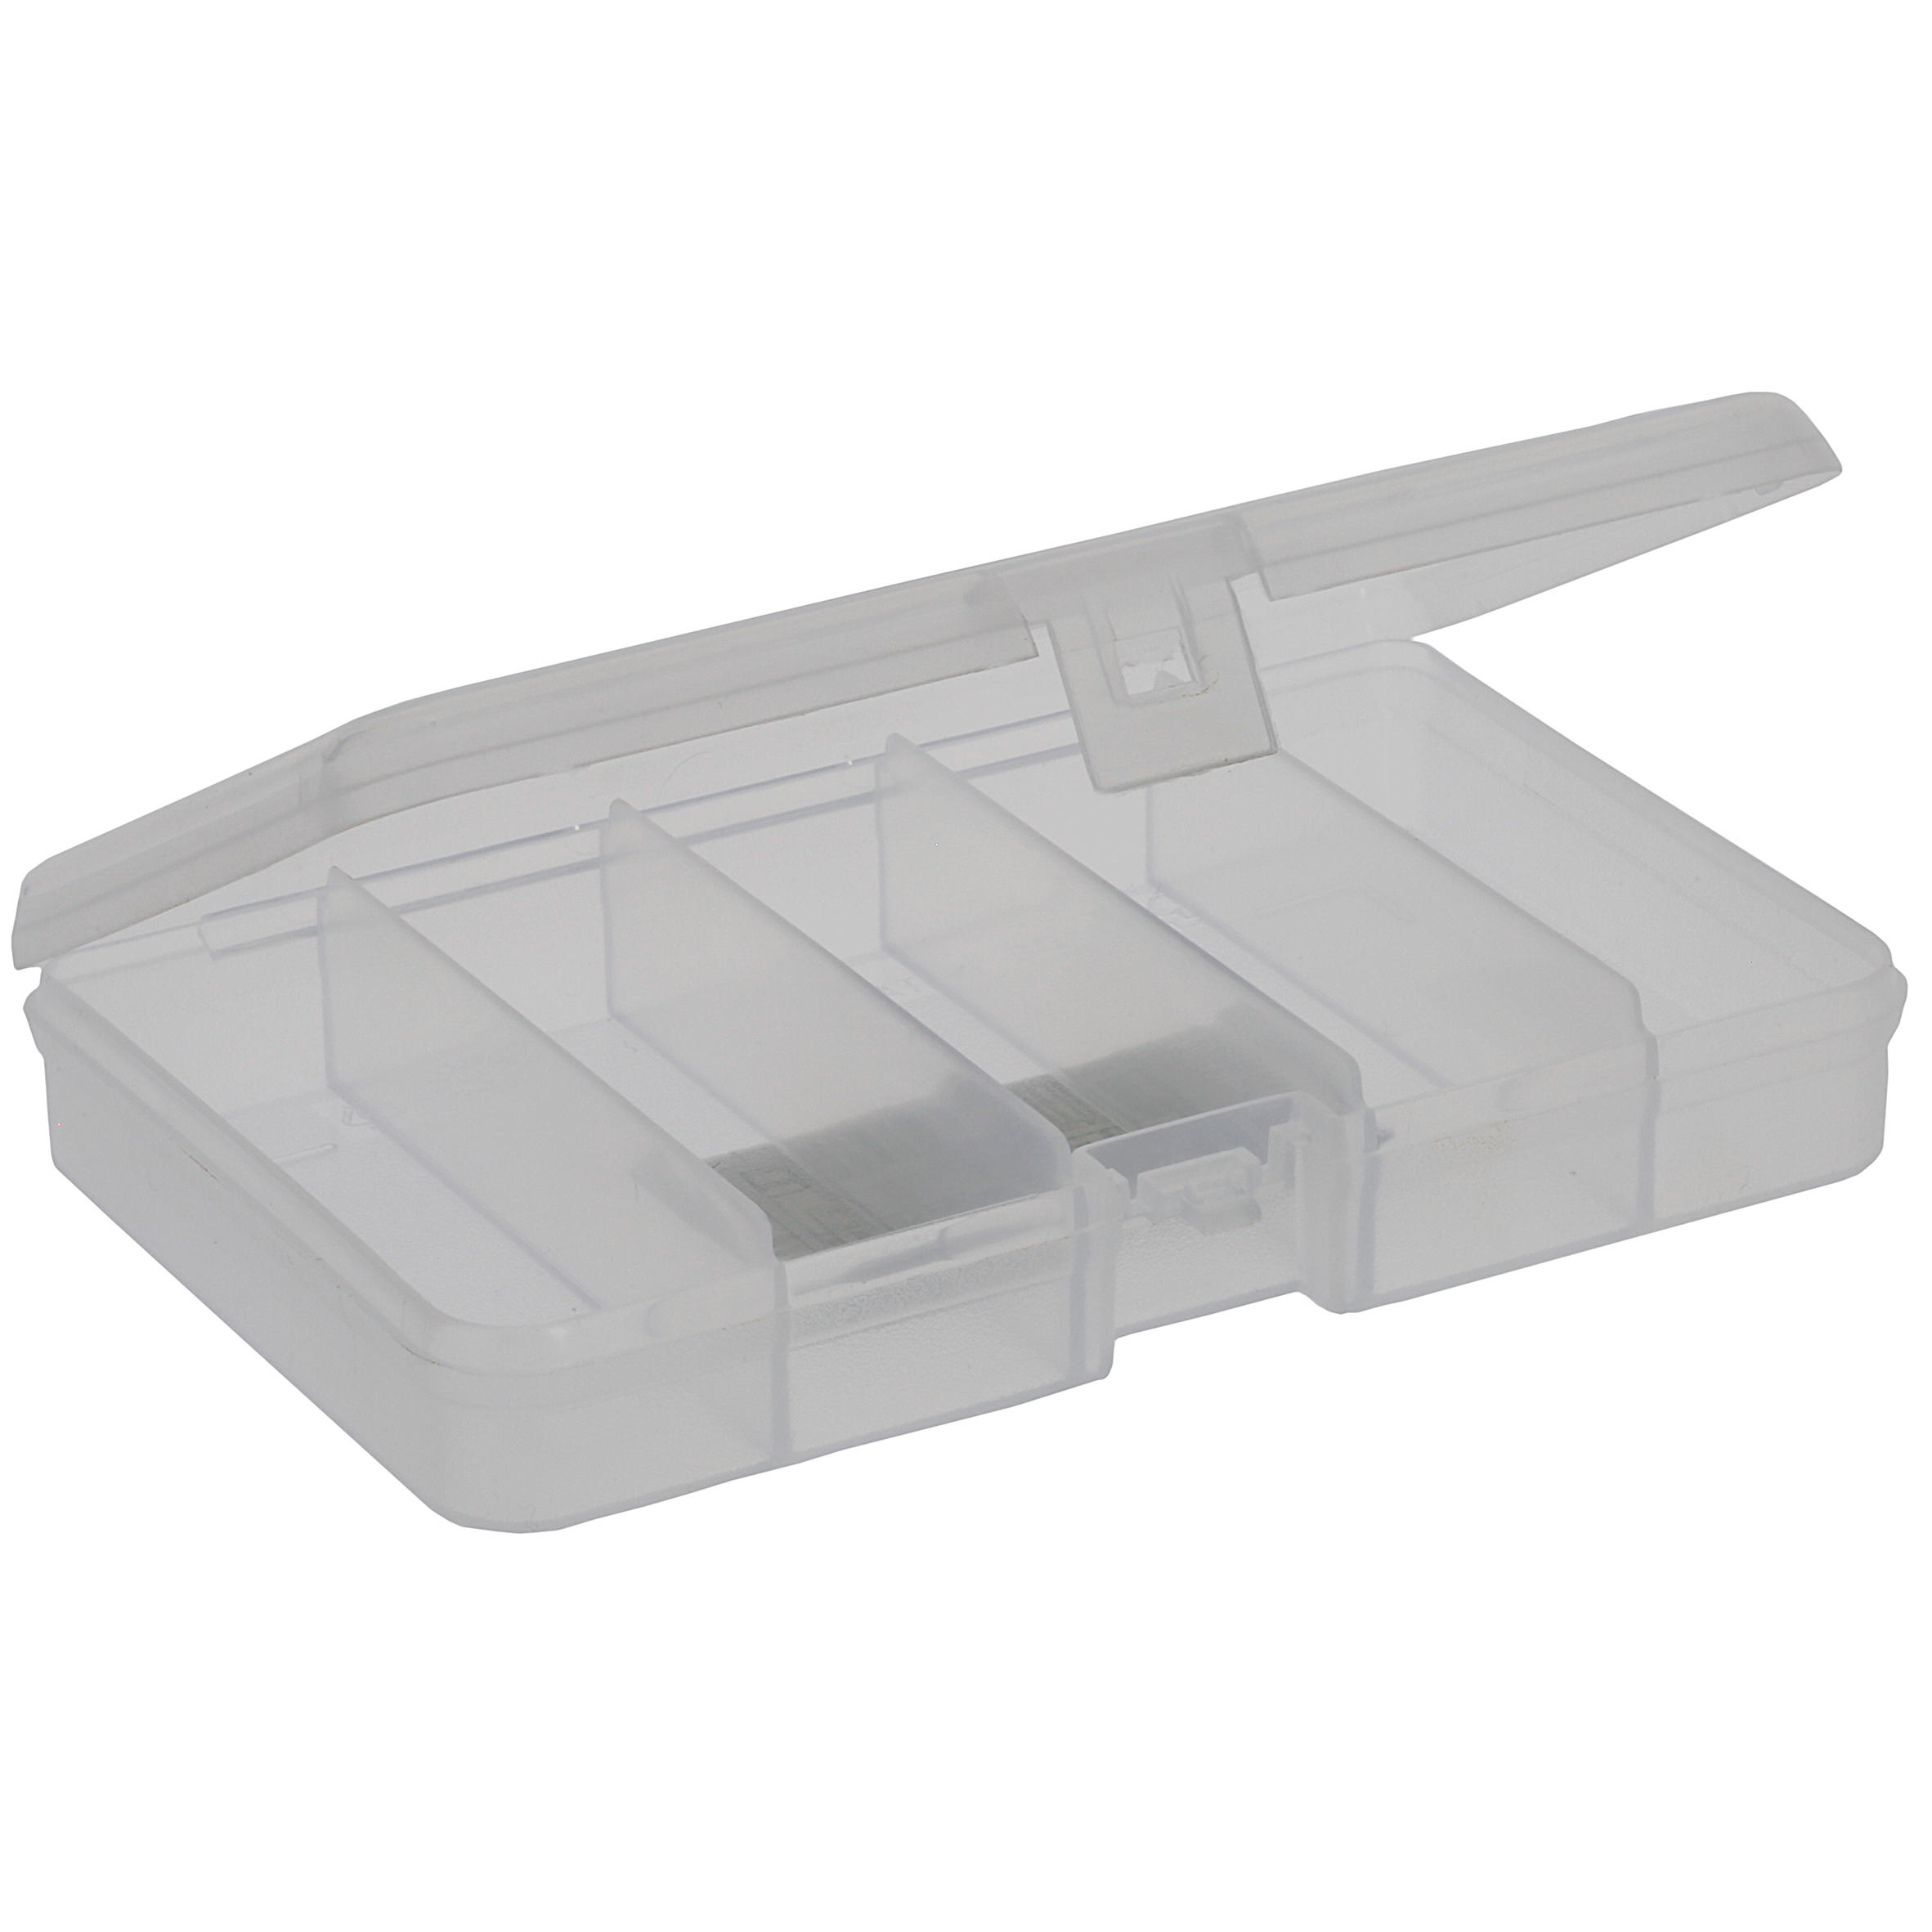 PM Lure fishing 5-compartment case